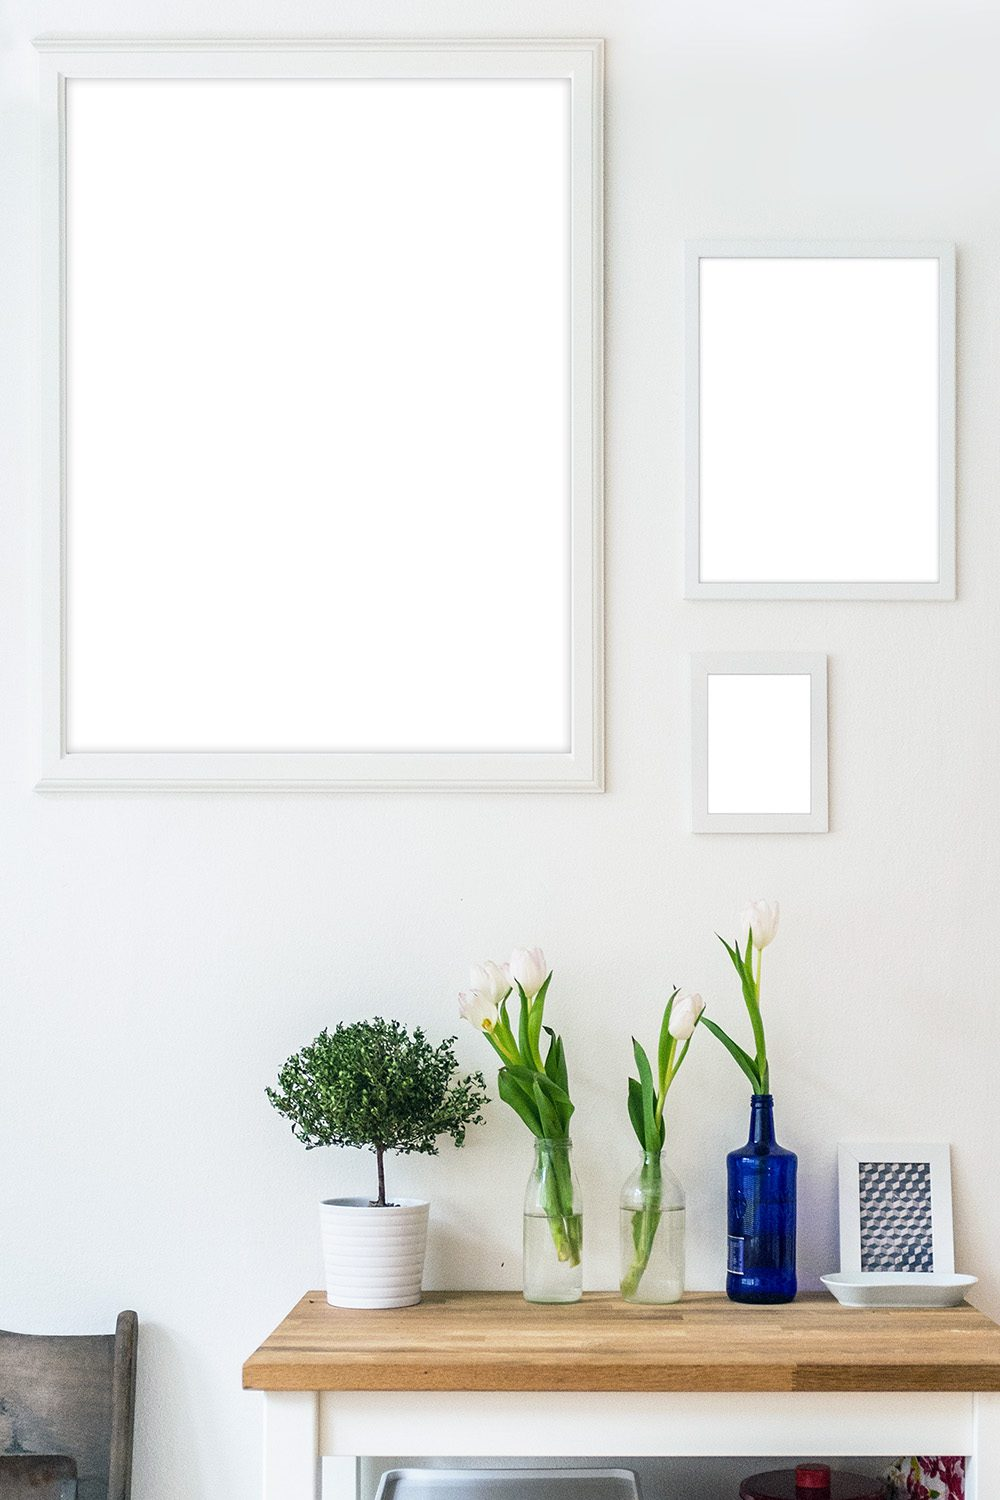 16-picture-photo-frame-mockup